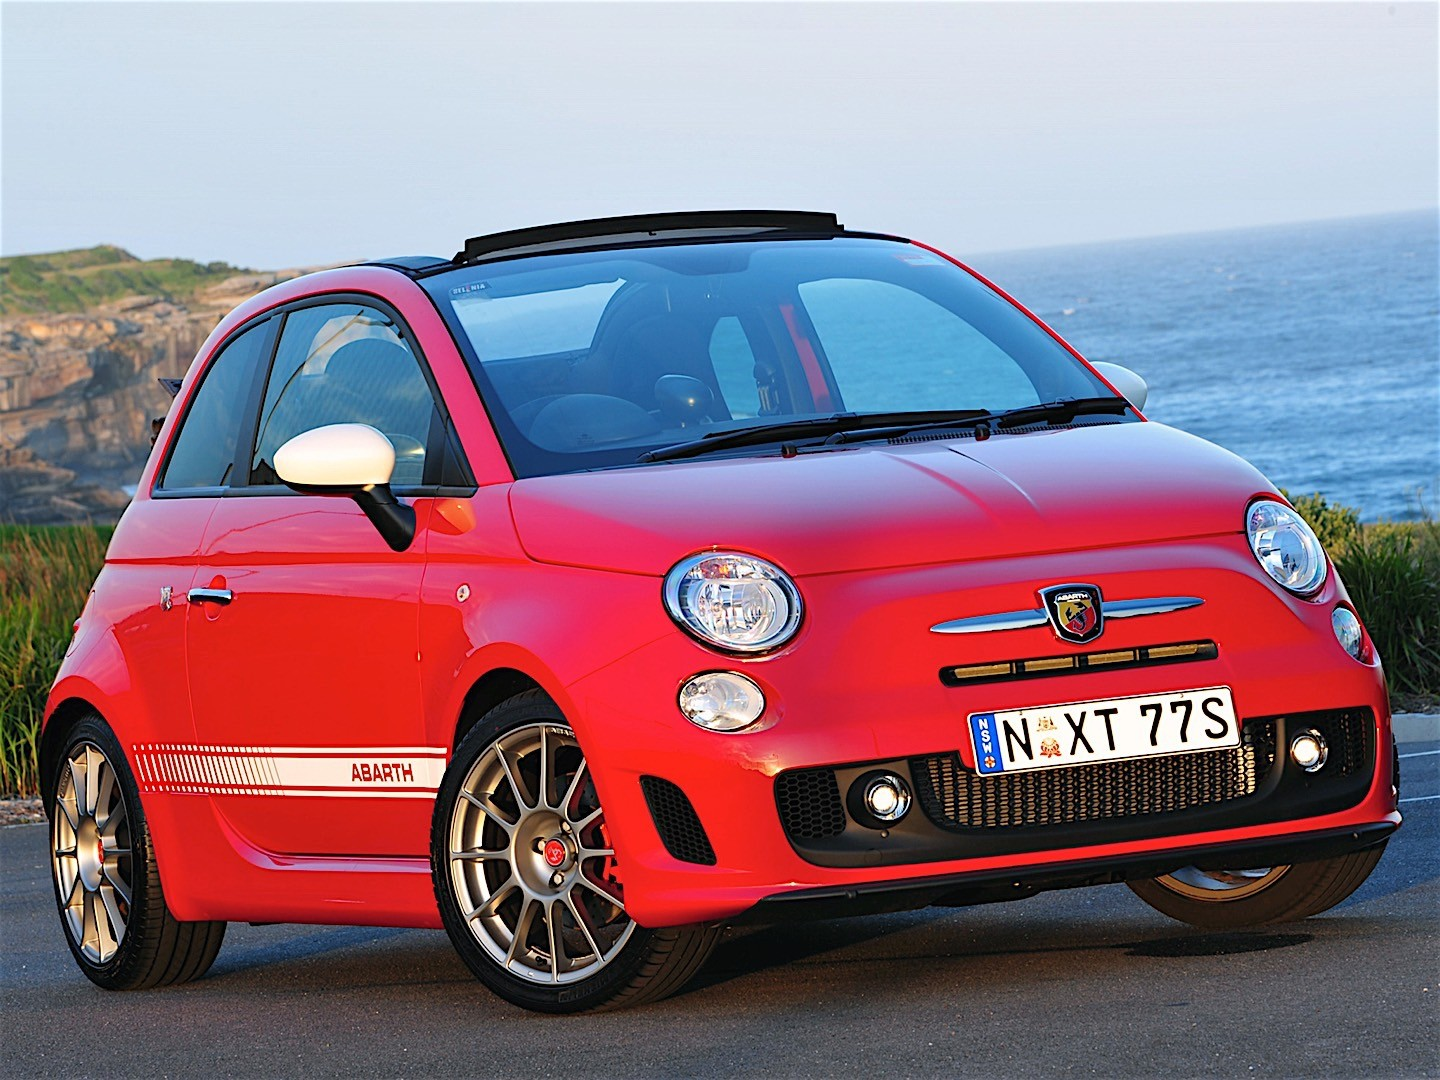 fiat 500c abarth esseesse specs 2010 2011 2012 2013 2014 2015 2016 2017 2018. Black Bedroom Furniture Sets. Home Design Ideas